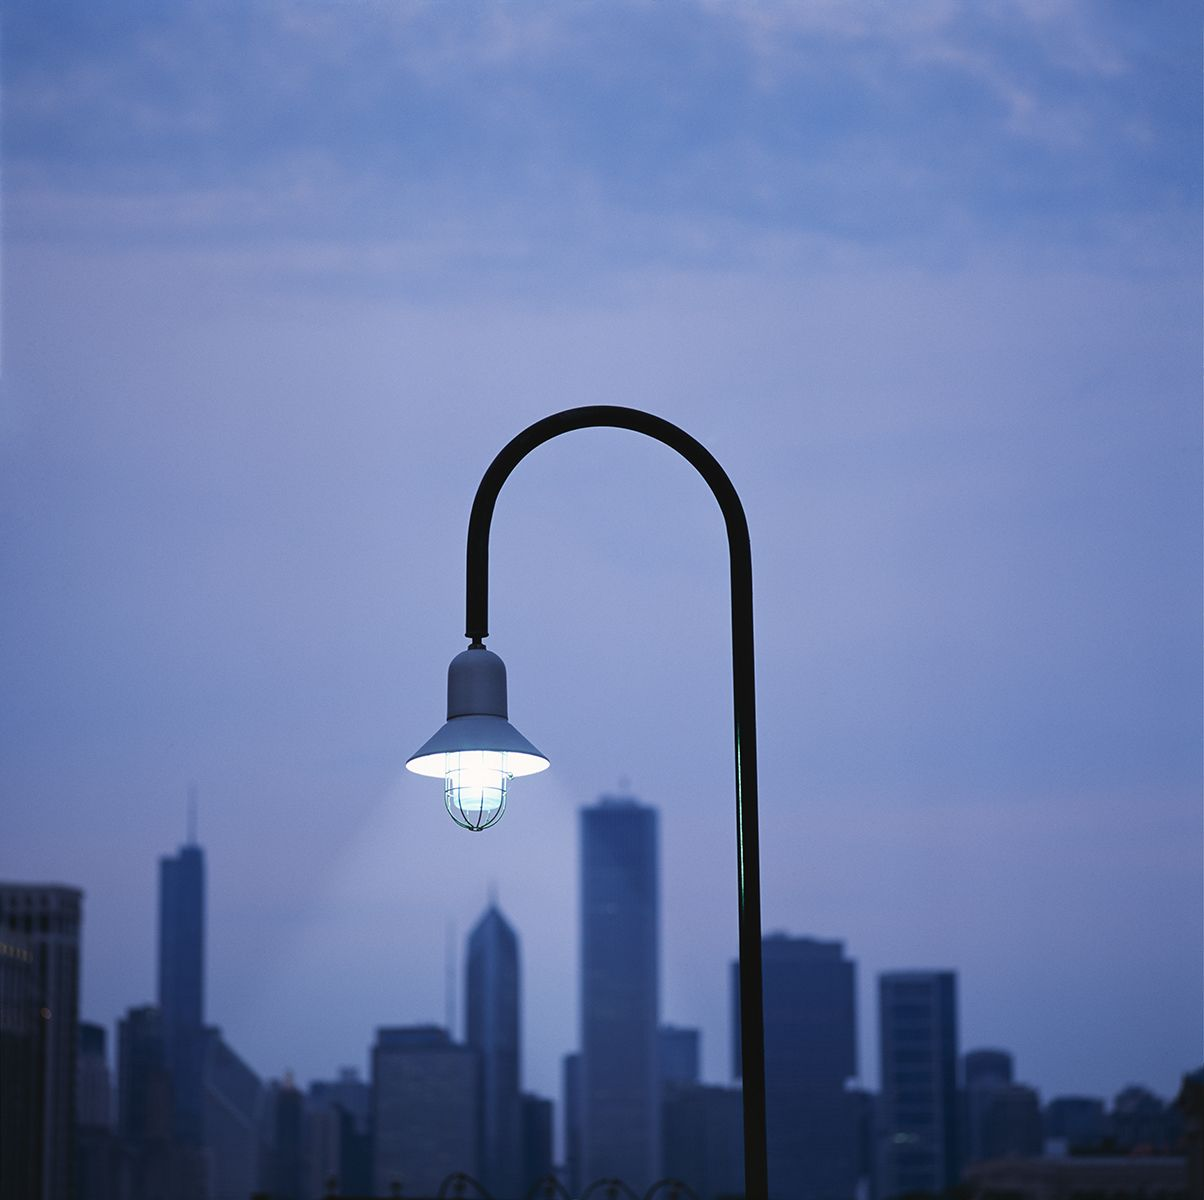 Lampost Light copy.jpg